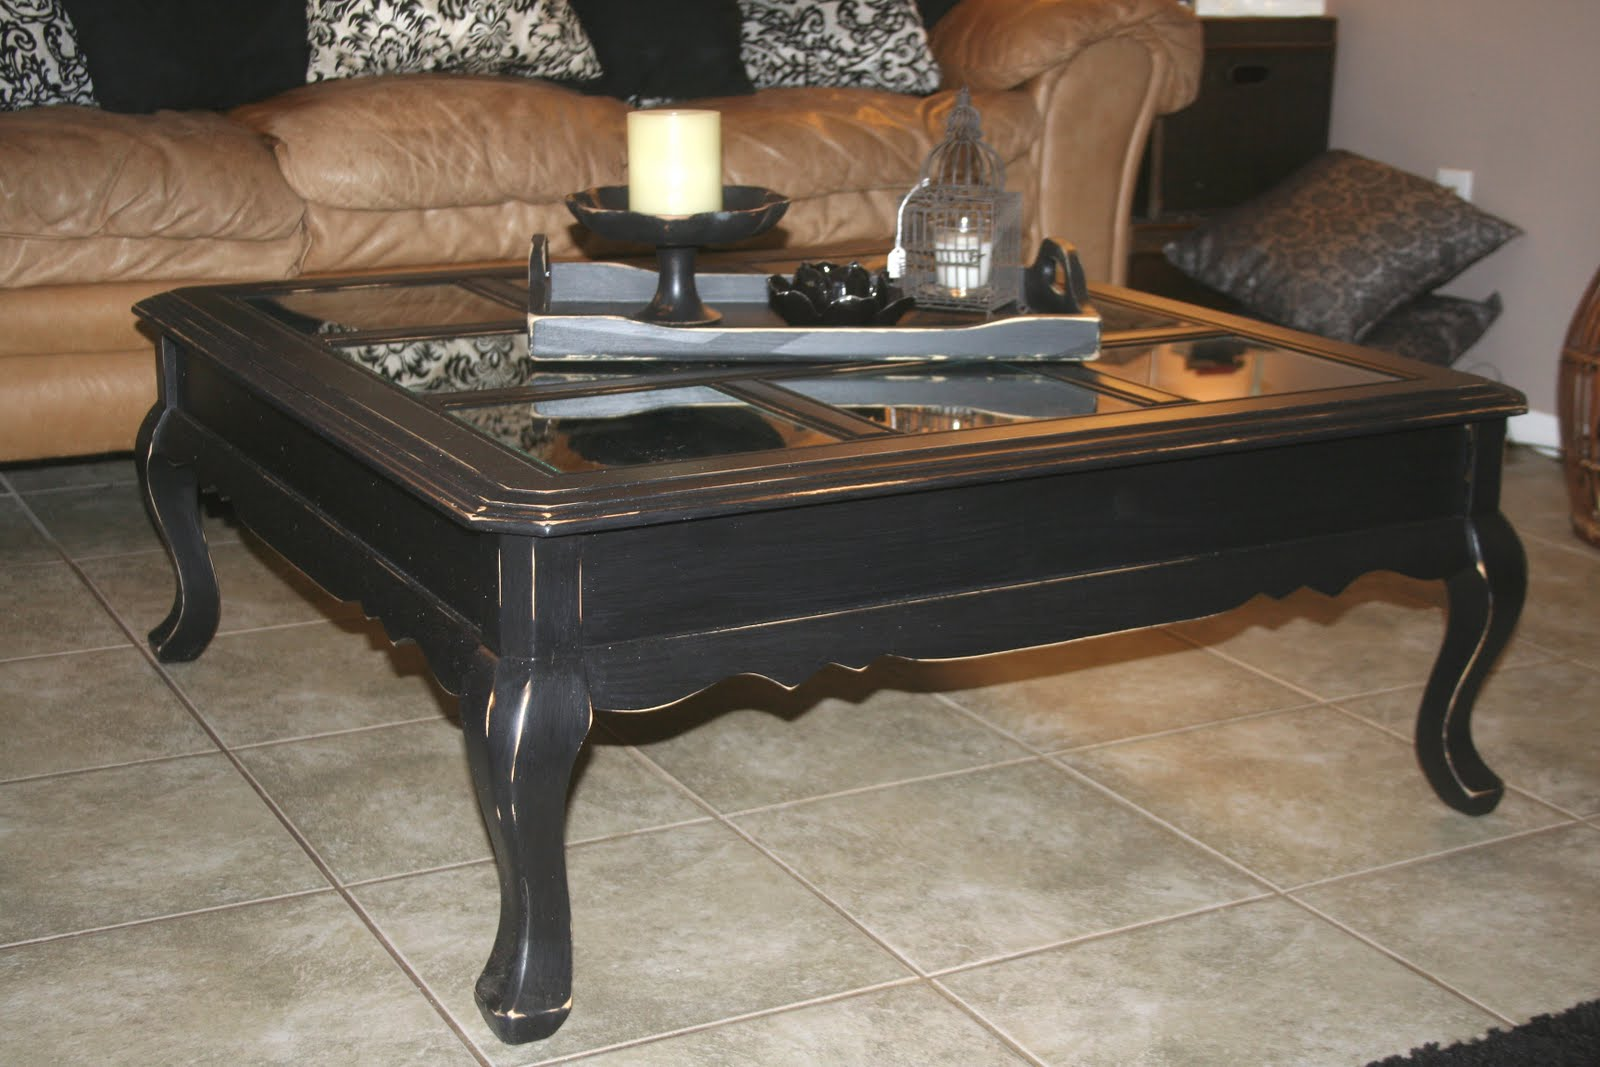 coffee tables ideas black rustic table design distressed square decigns contemporary glass top curve legs furniture wood finishing large end rounded corners thomasville